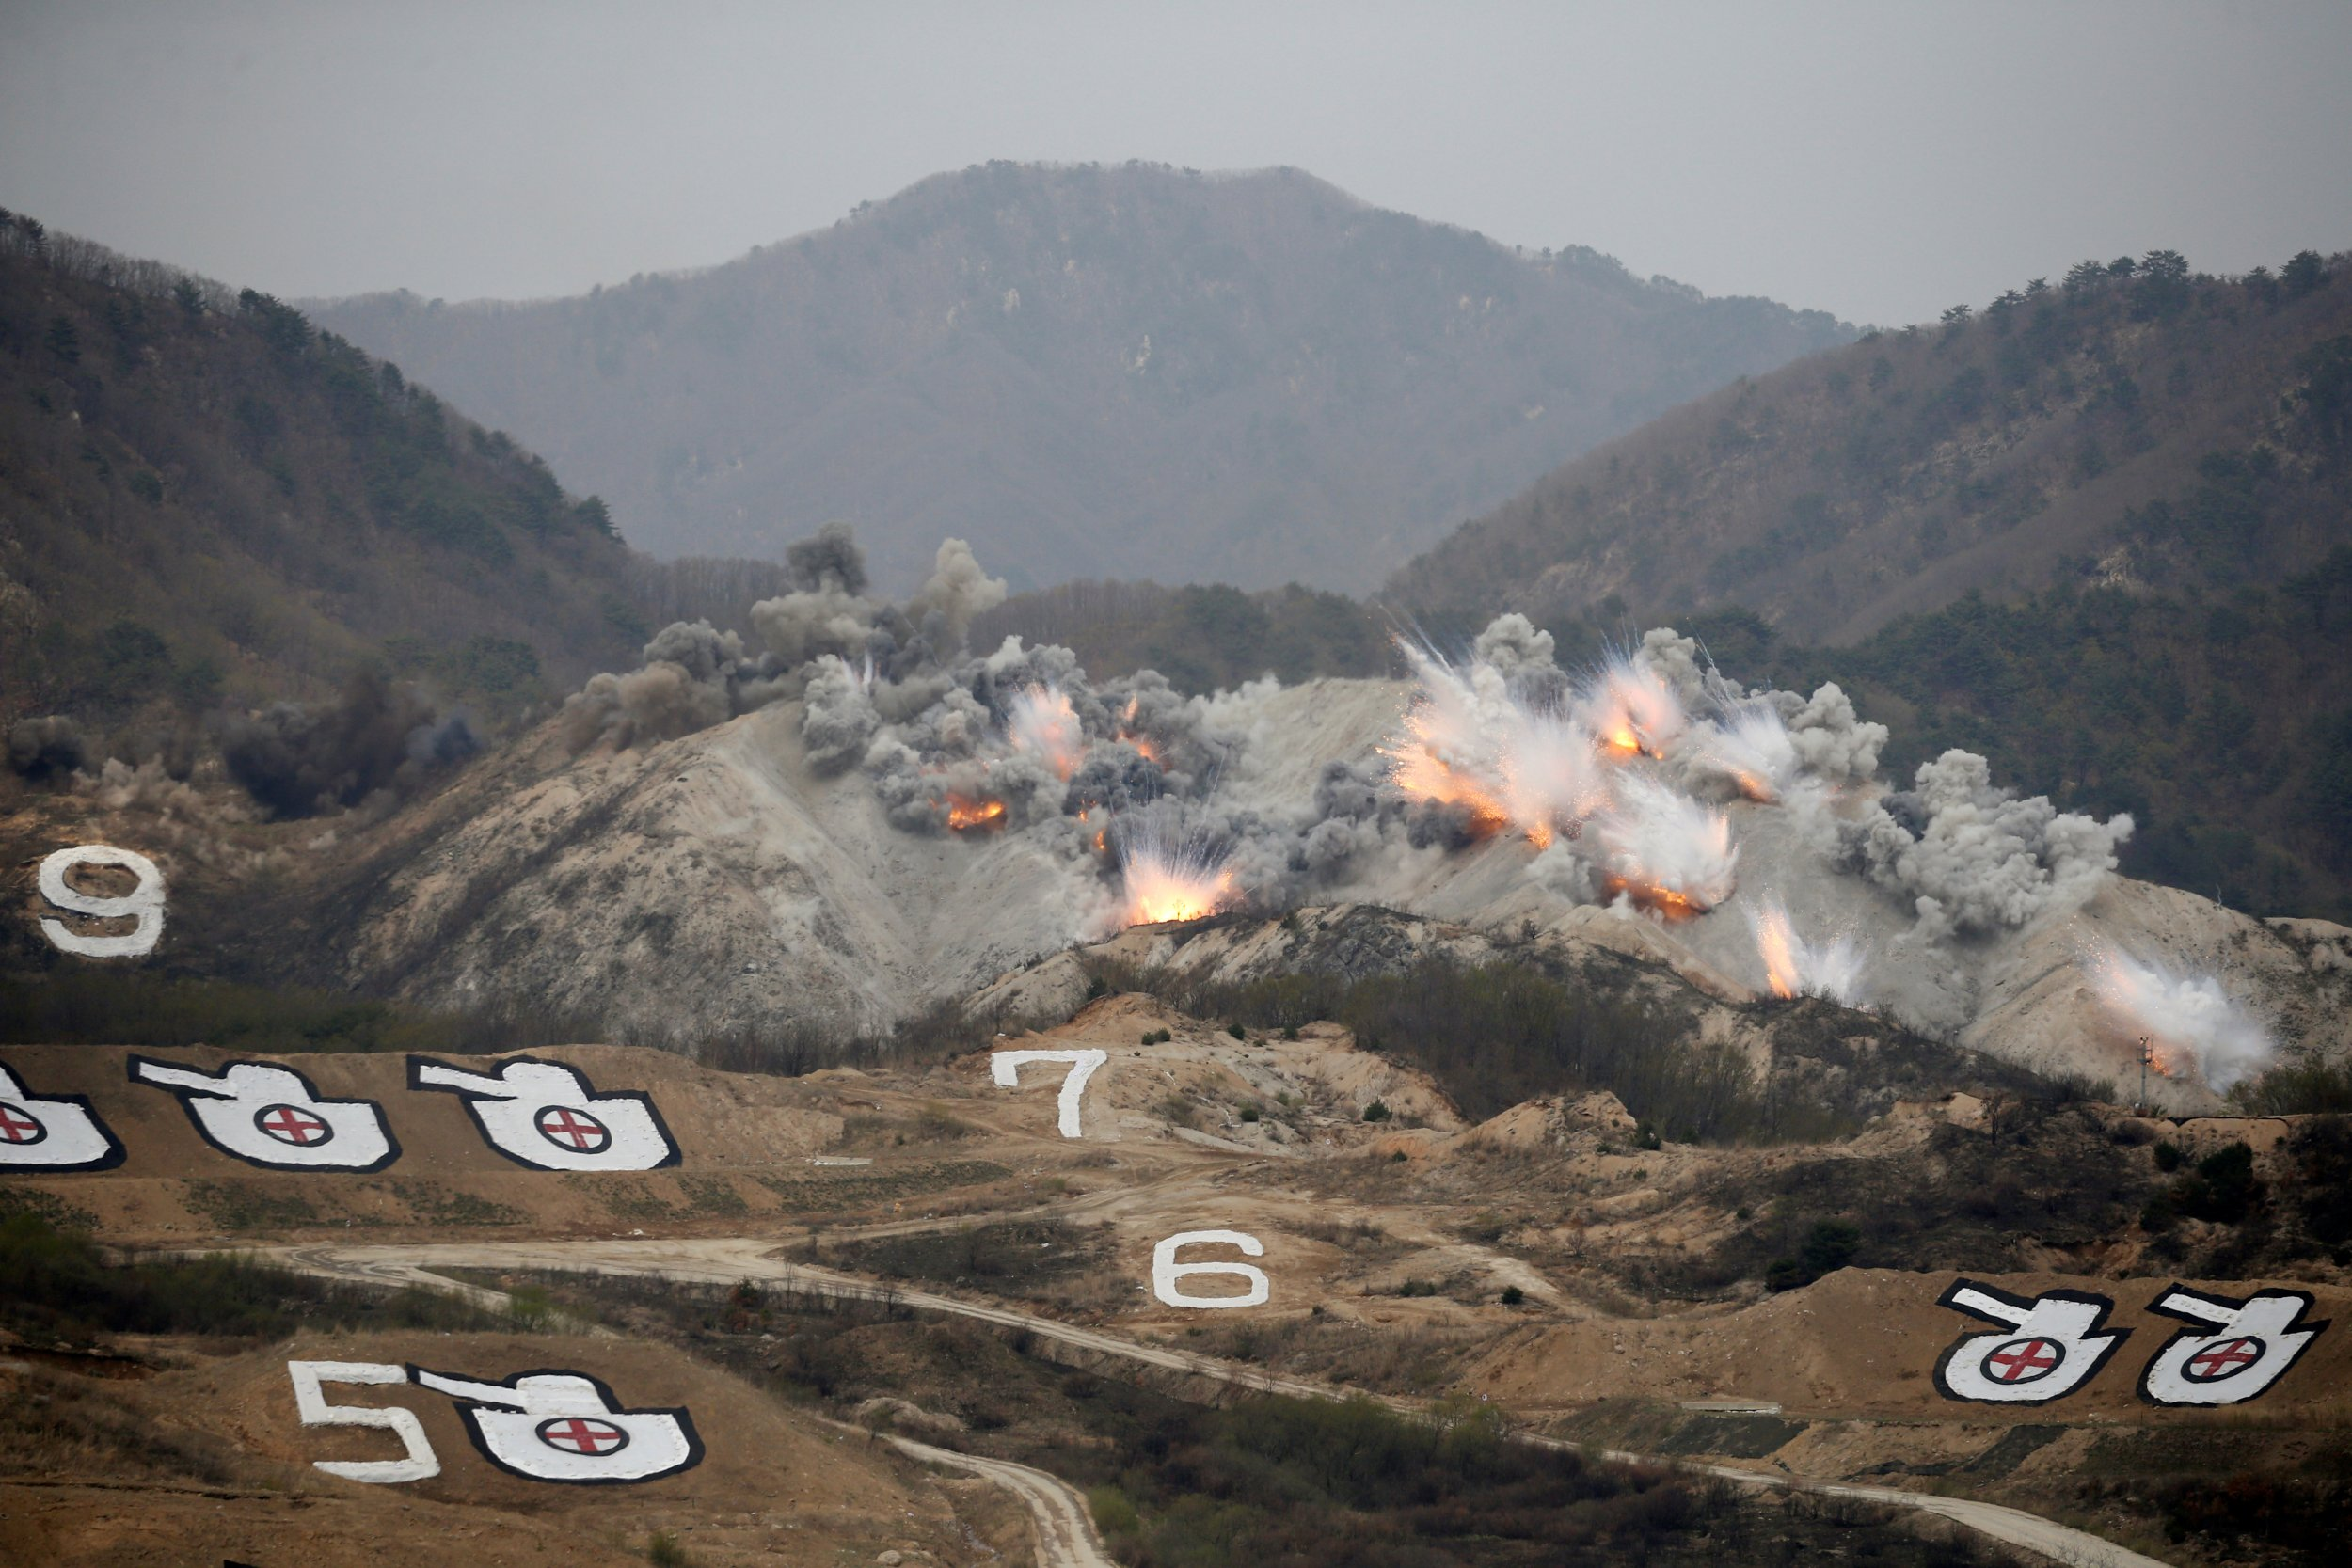 A training field near the demilitarized zone separating the two Koreas in Pocheon, South Korea April 21, 2017.